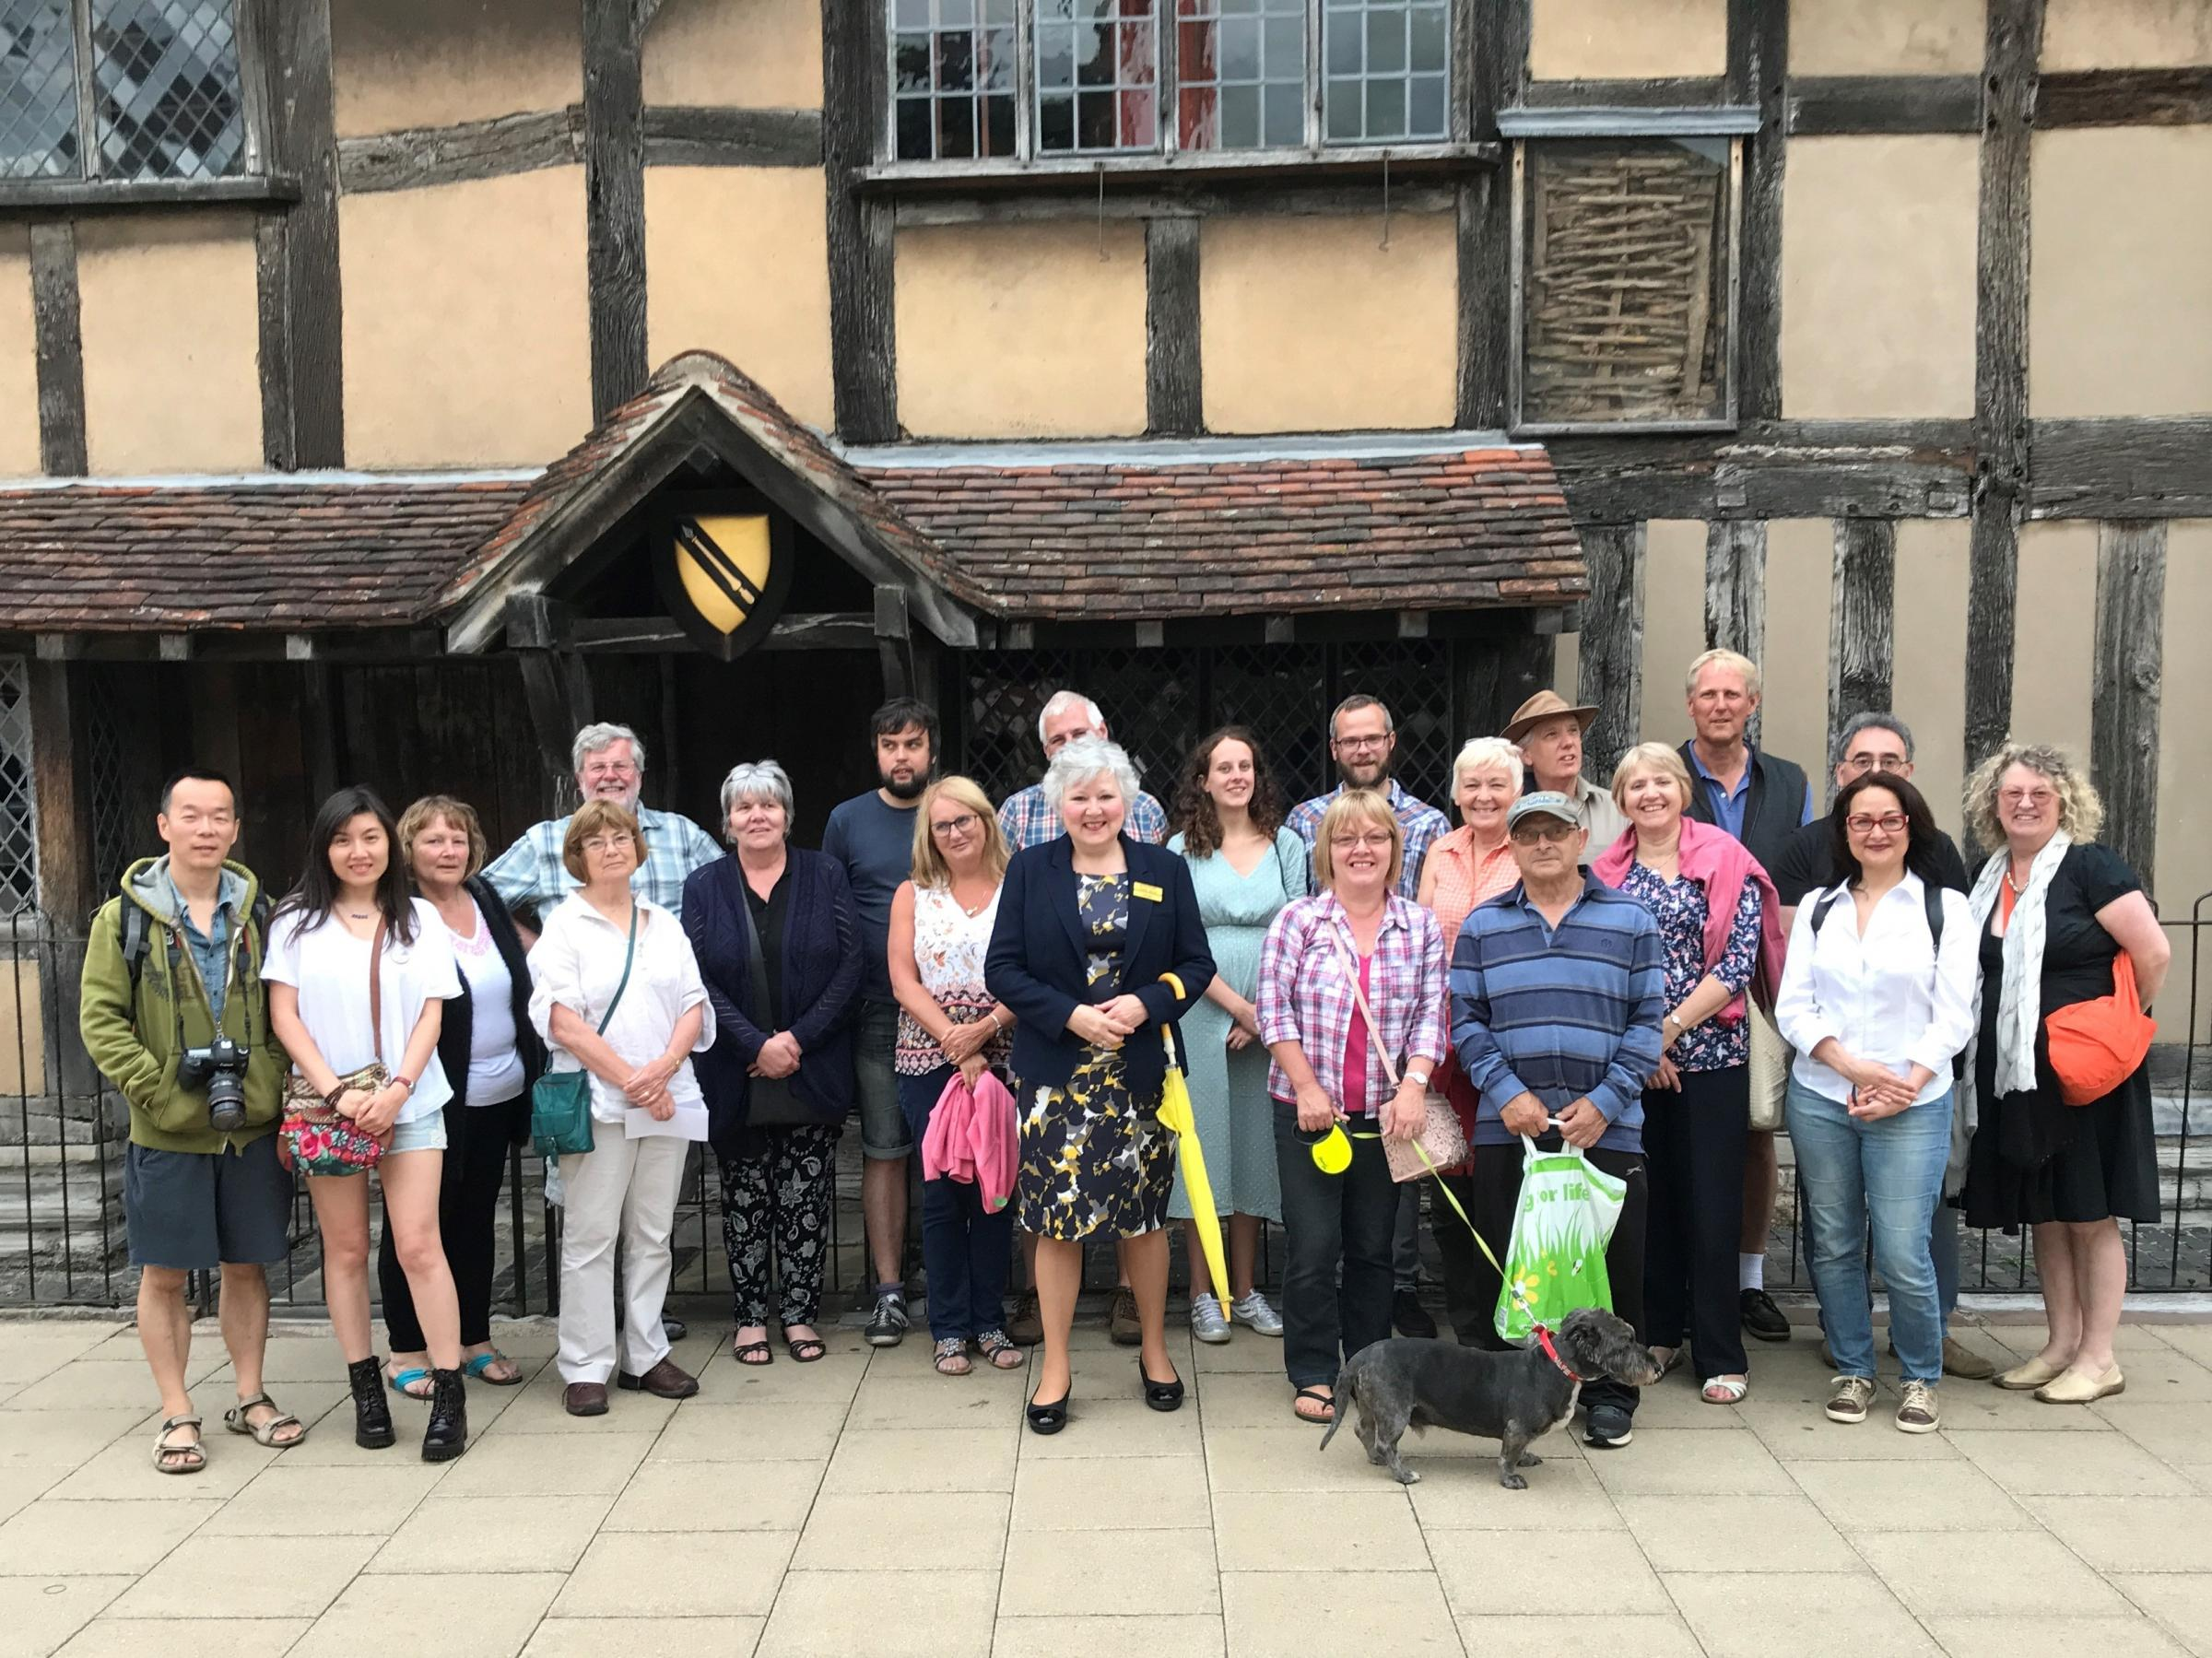 Daily guided walking tour in Shakespeare's Stratford upon Avon